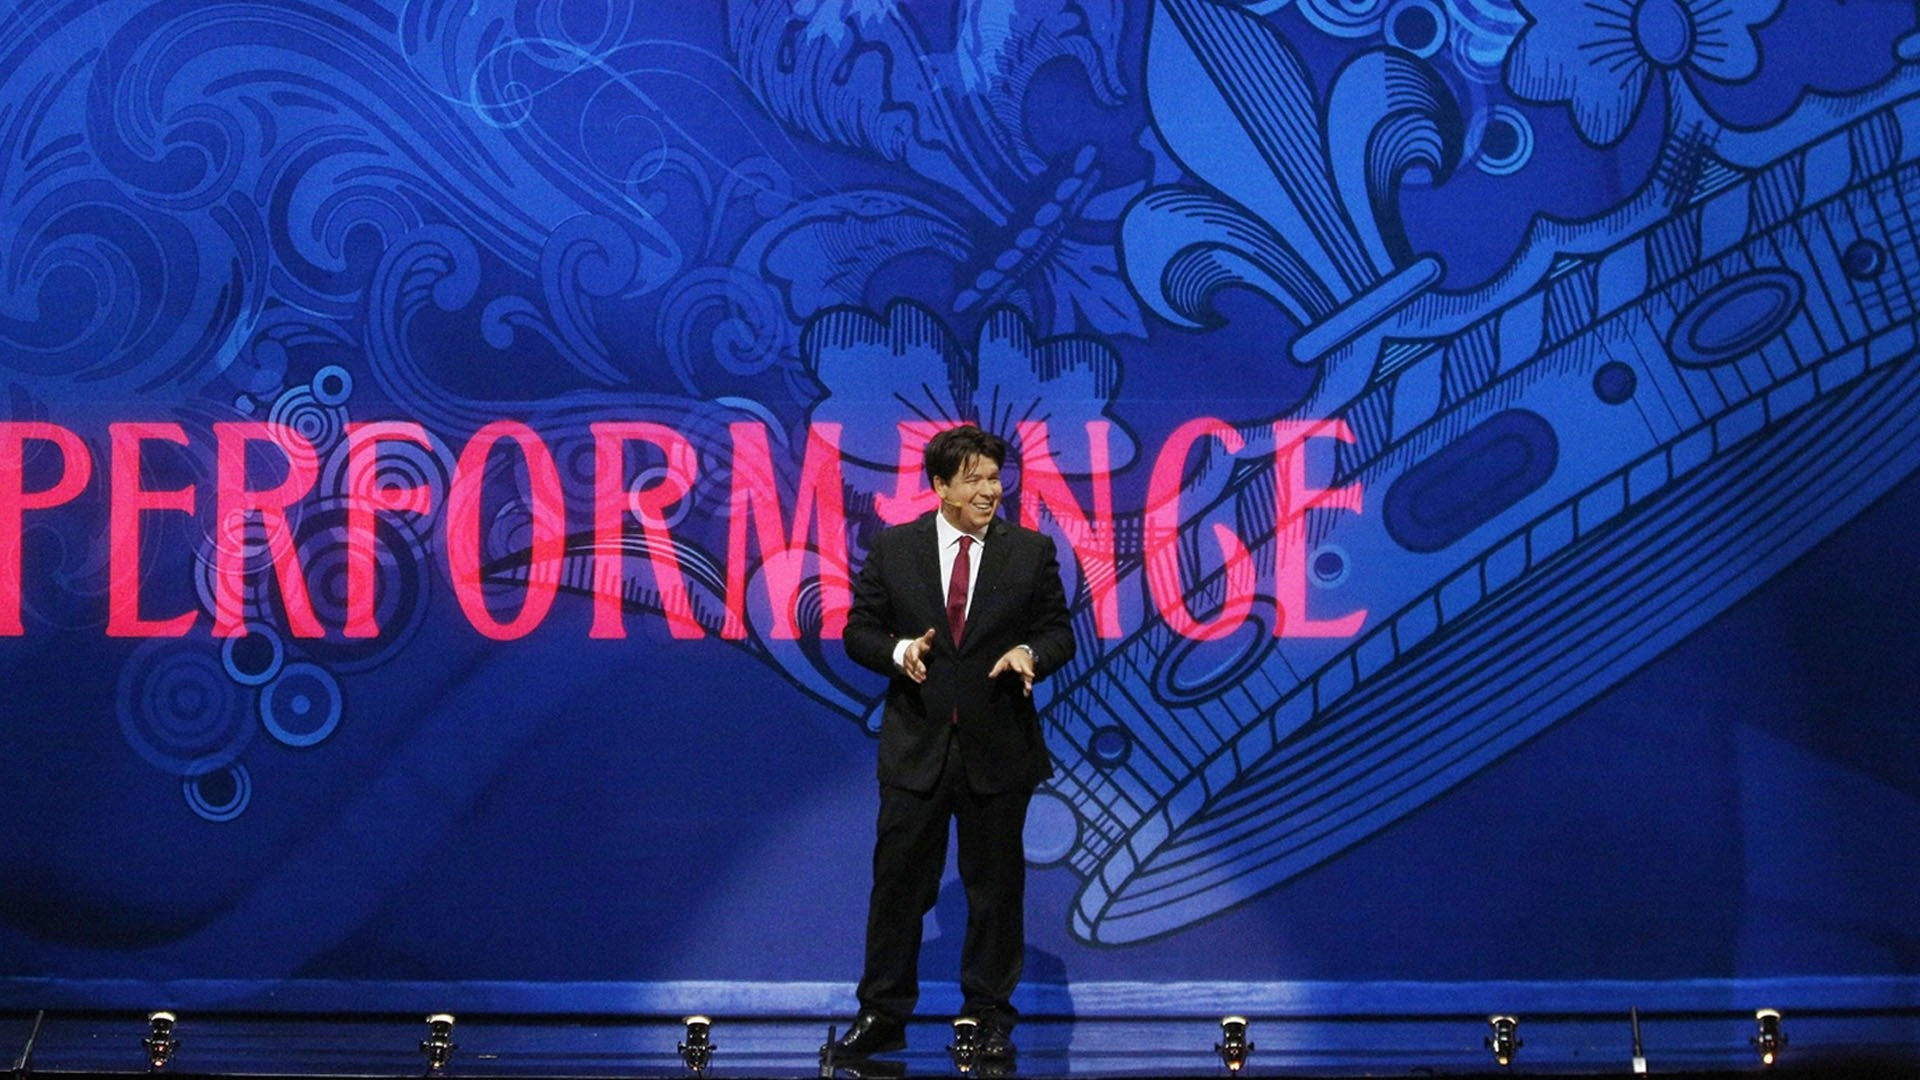 The Royal Variety Performance 2014